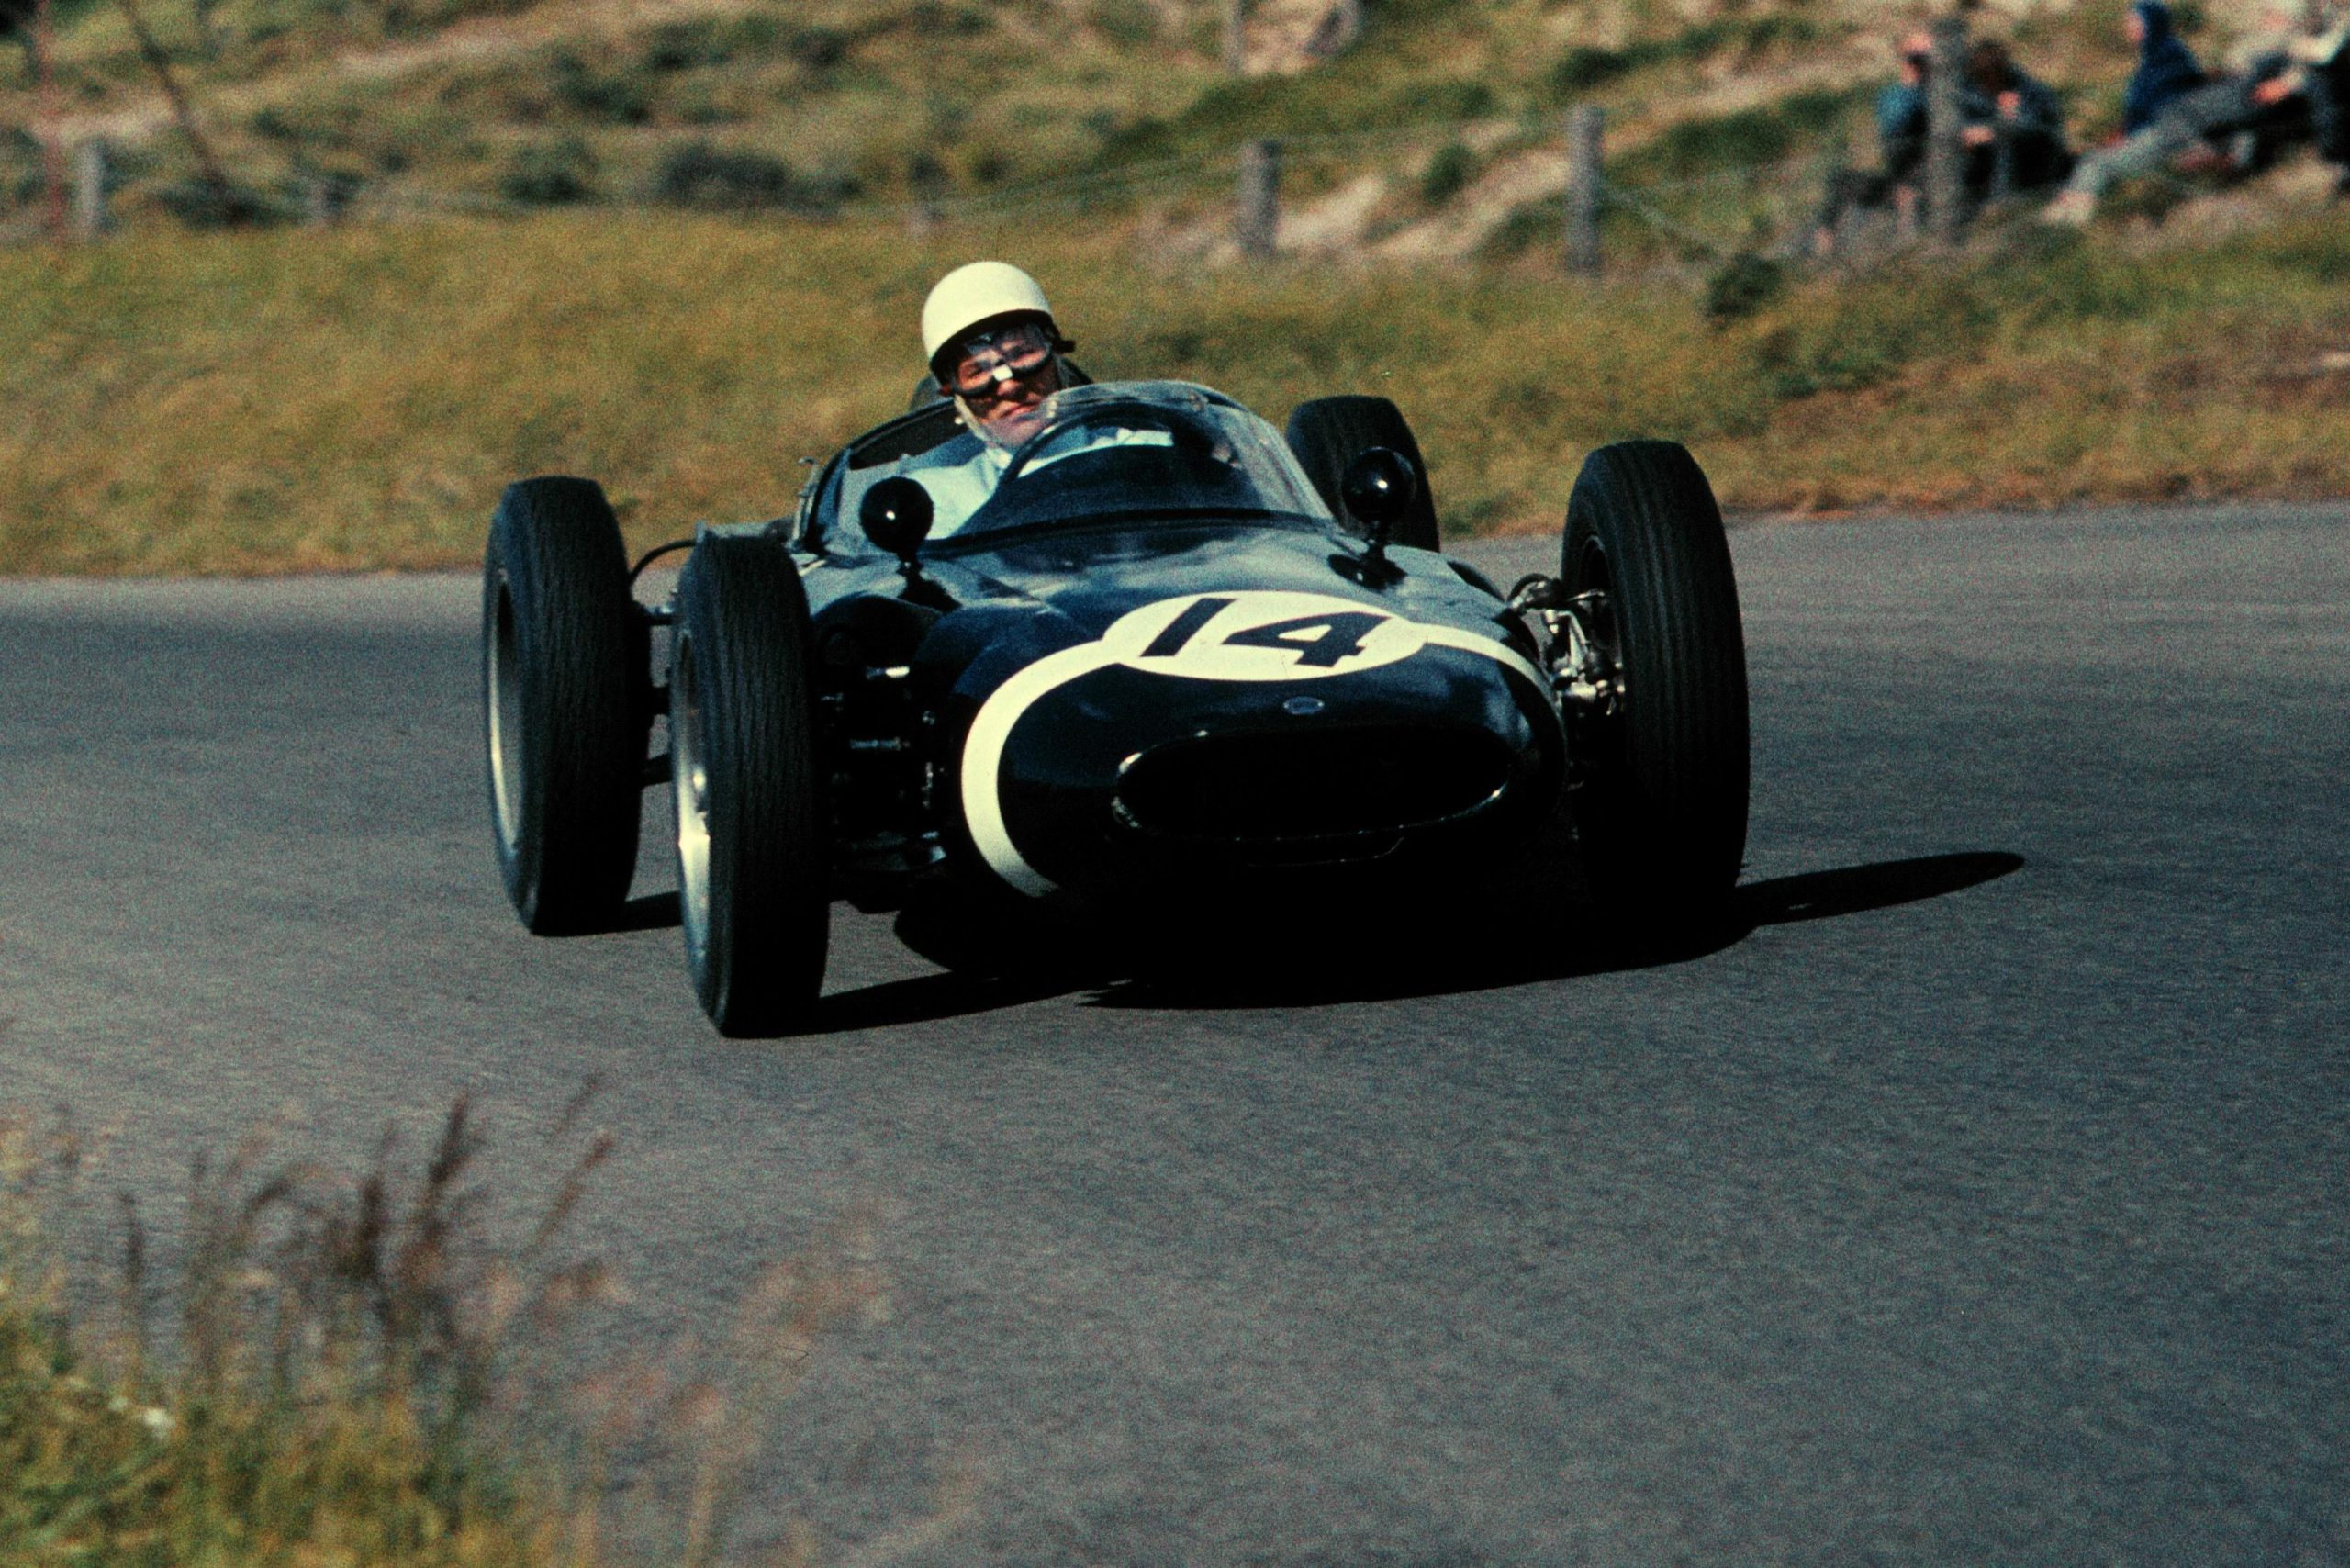 Stirling Moss in his Lotus 18.